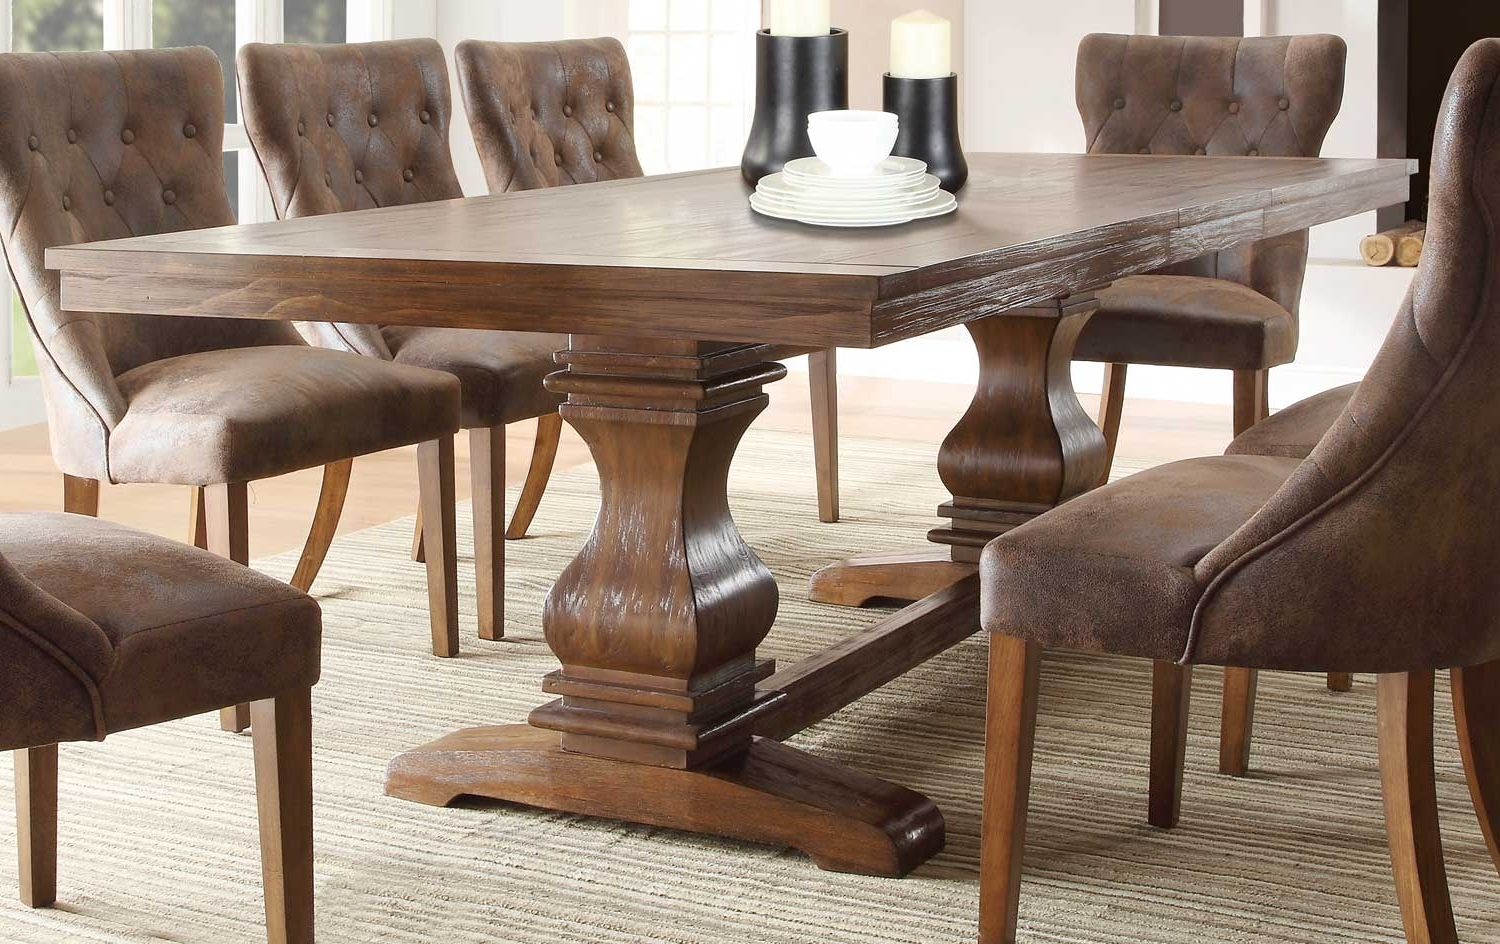 Homelegance Marie Louise Dining Table – Rustic Oak Brown 2526 96 With Regard To Trendy Rustic Oak Dining Tables (View 5 of 25)